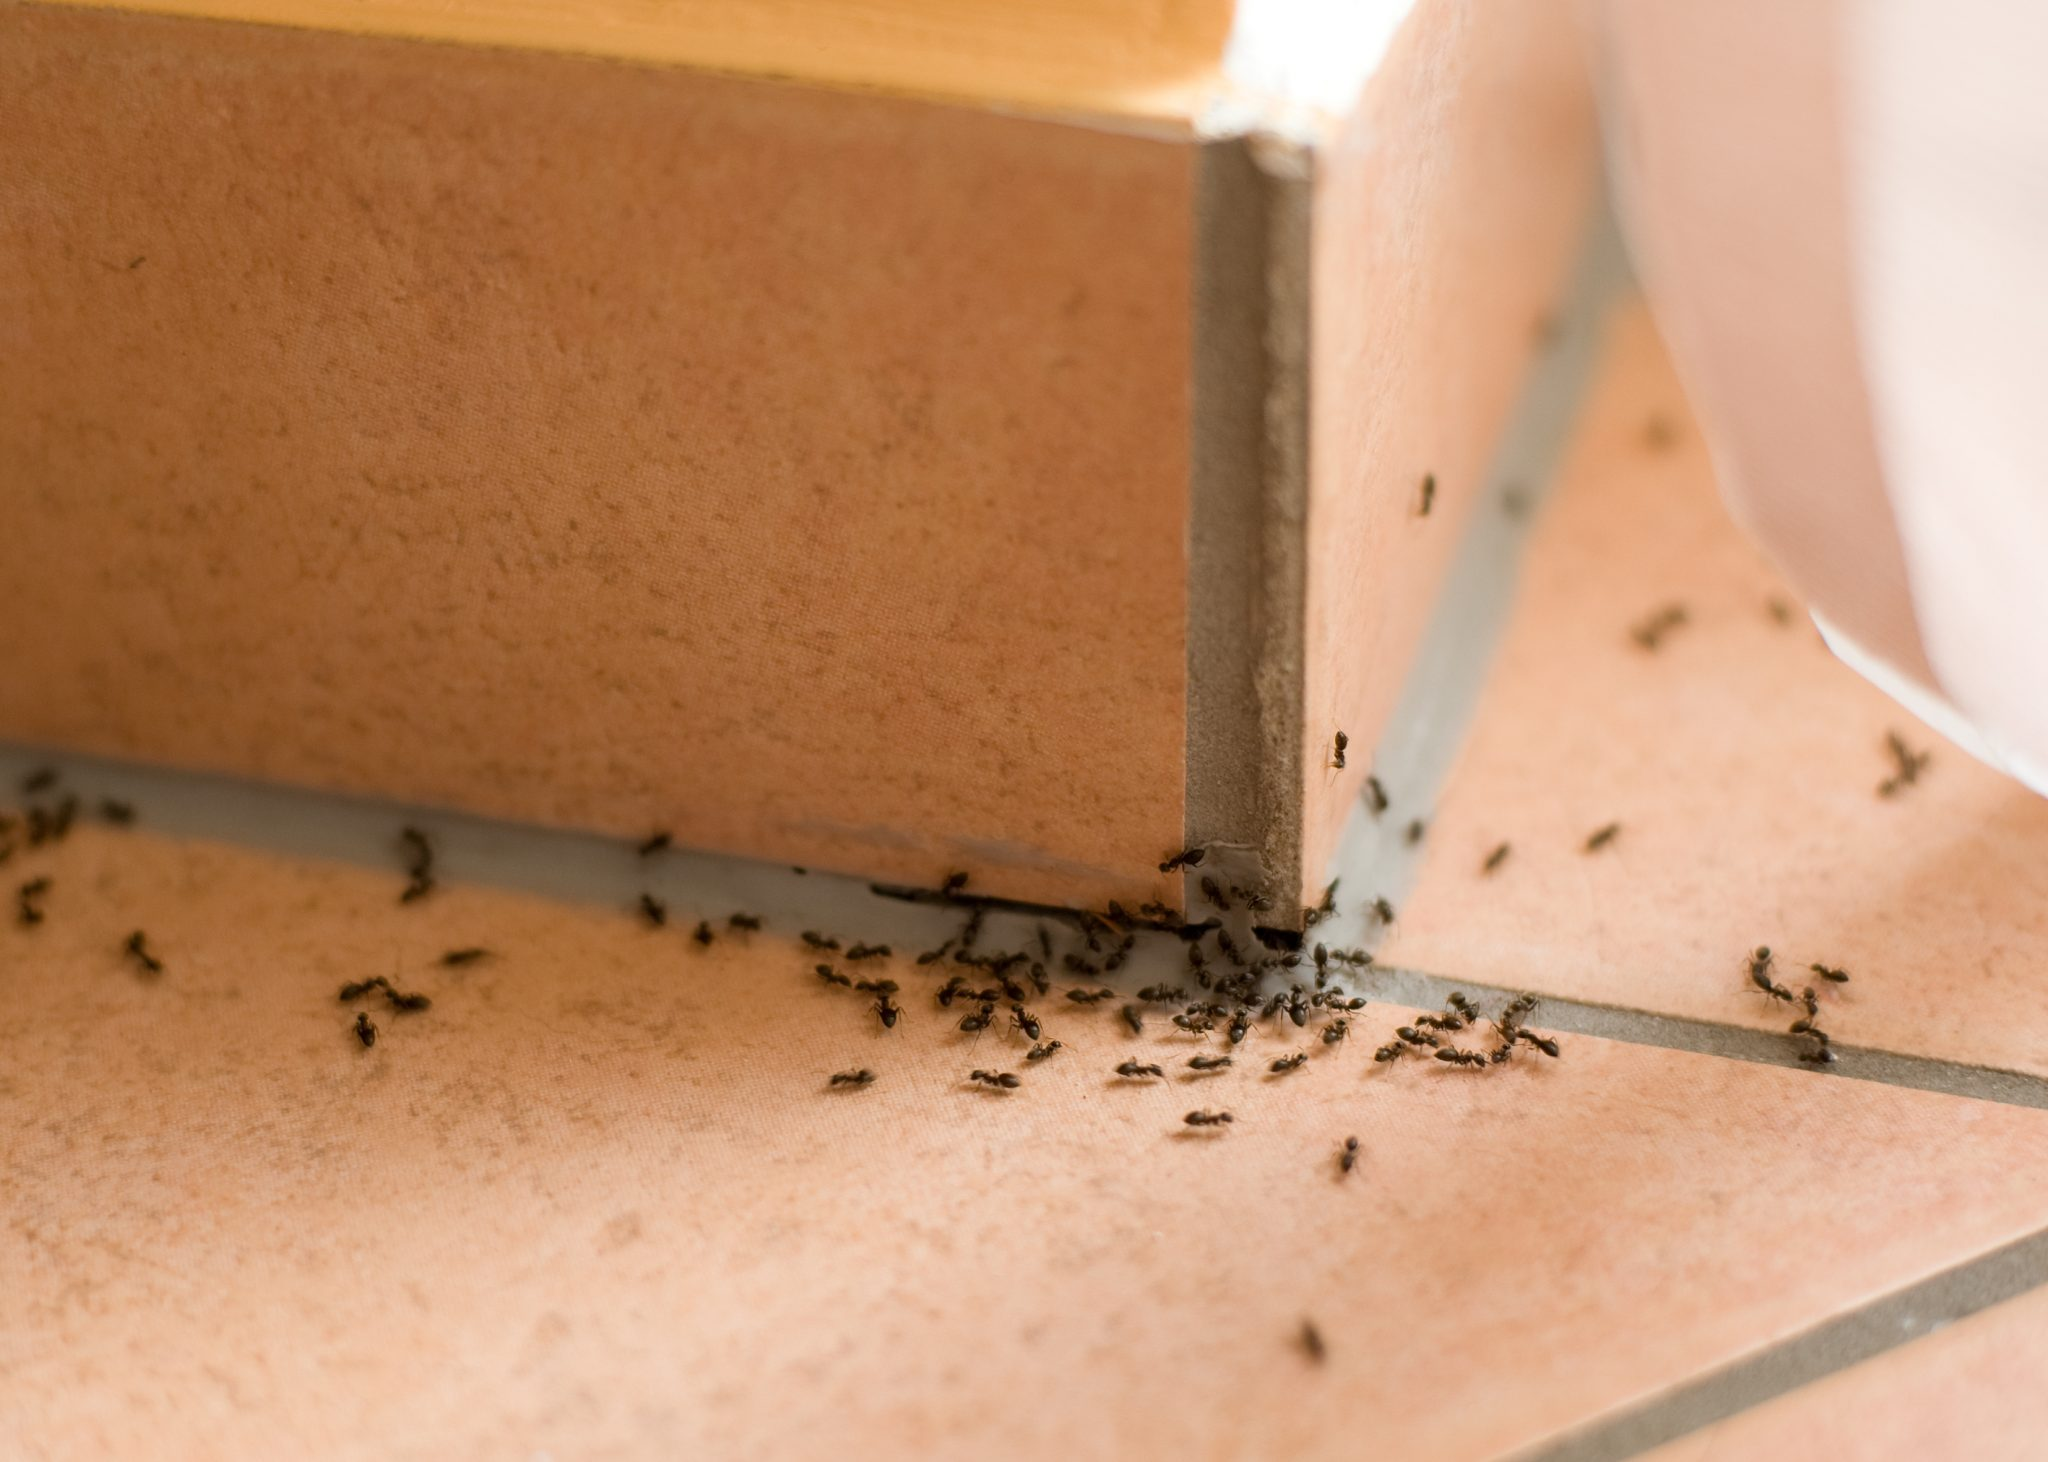 Ant Infestations - How Quick Home Remedies Can Make Your Problem Worse